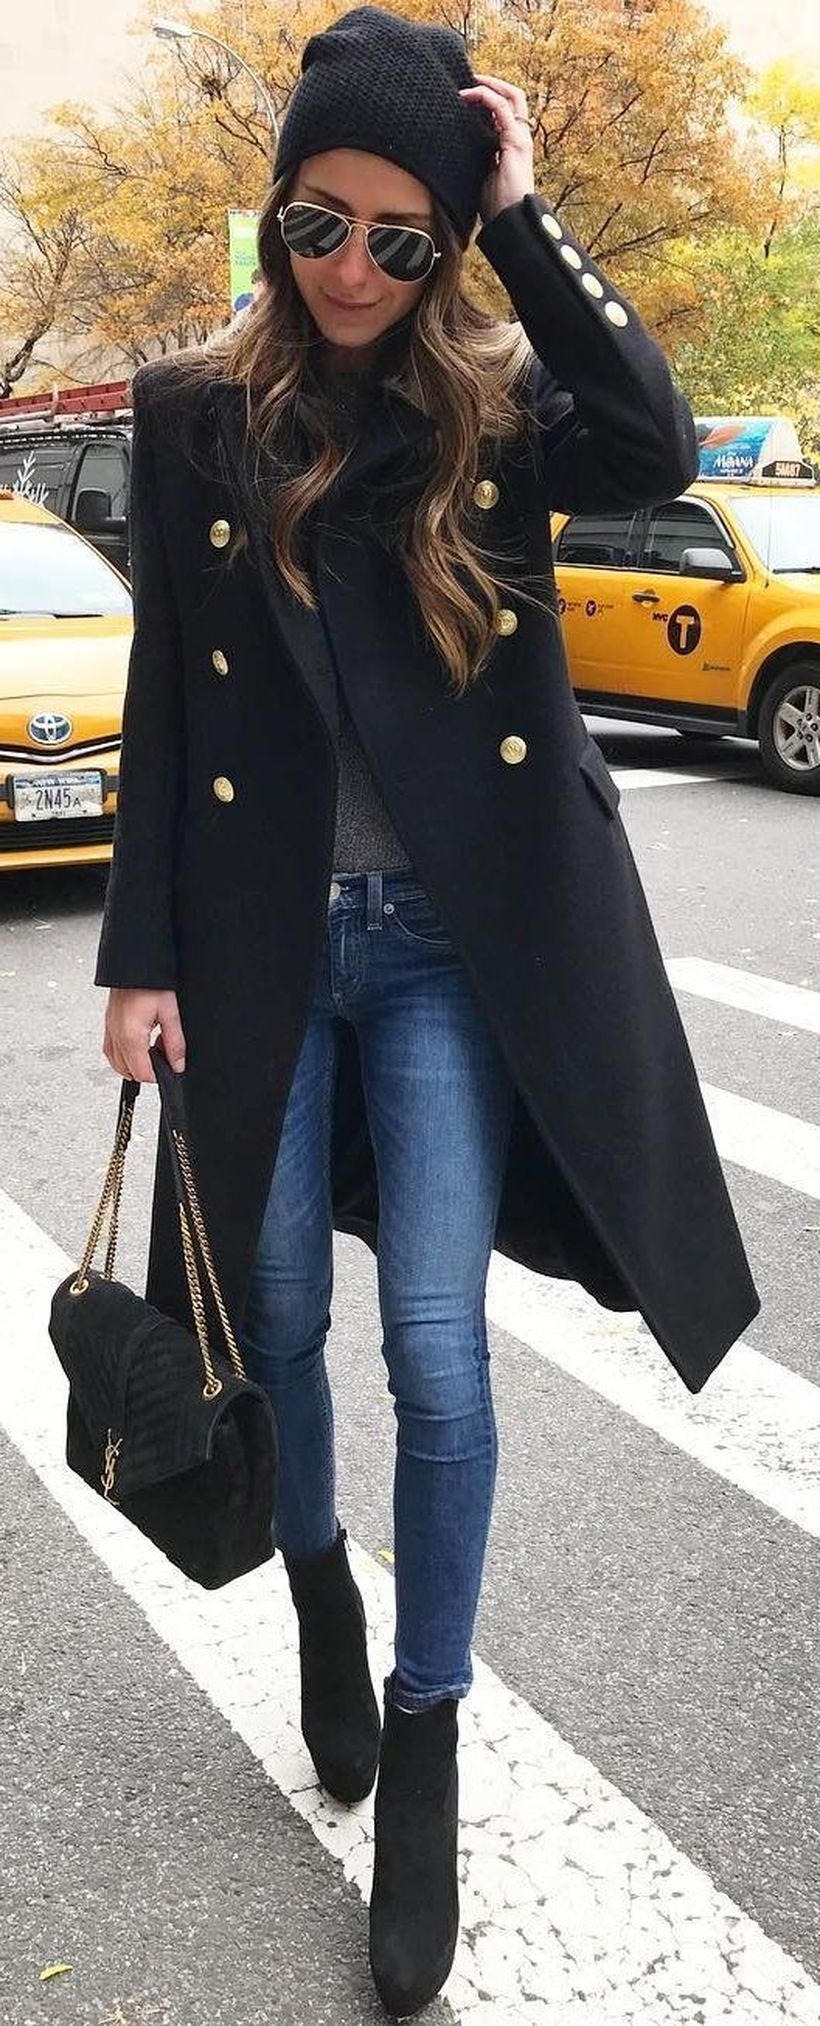 Fashionable outfit style for winter 2017 74